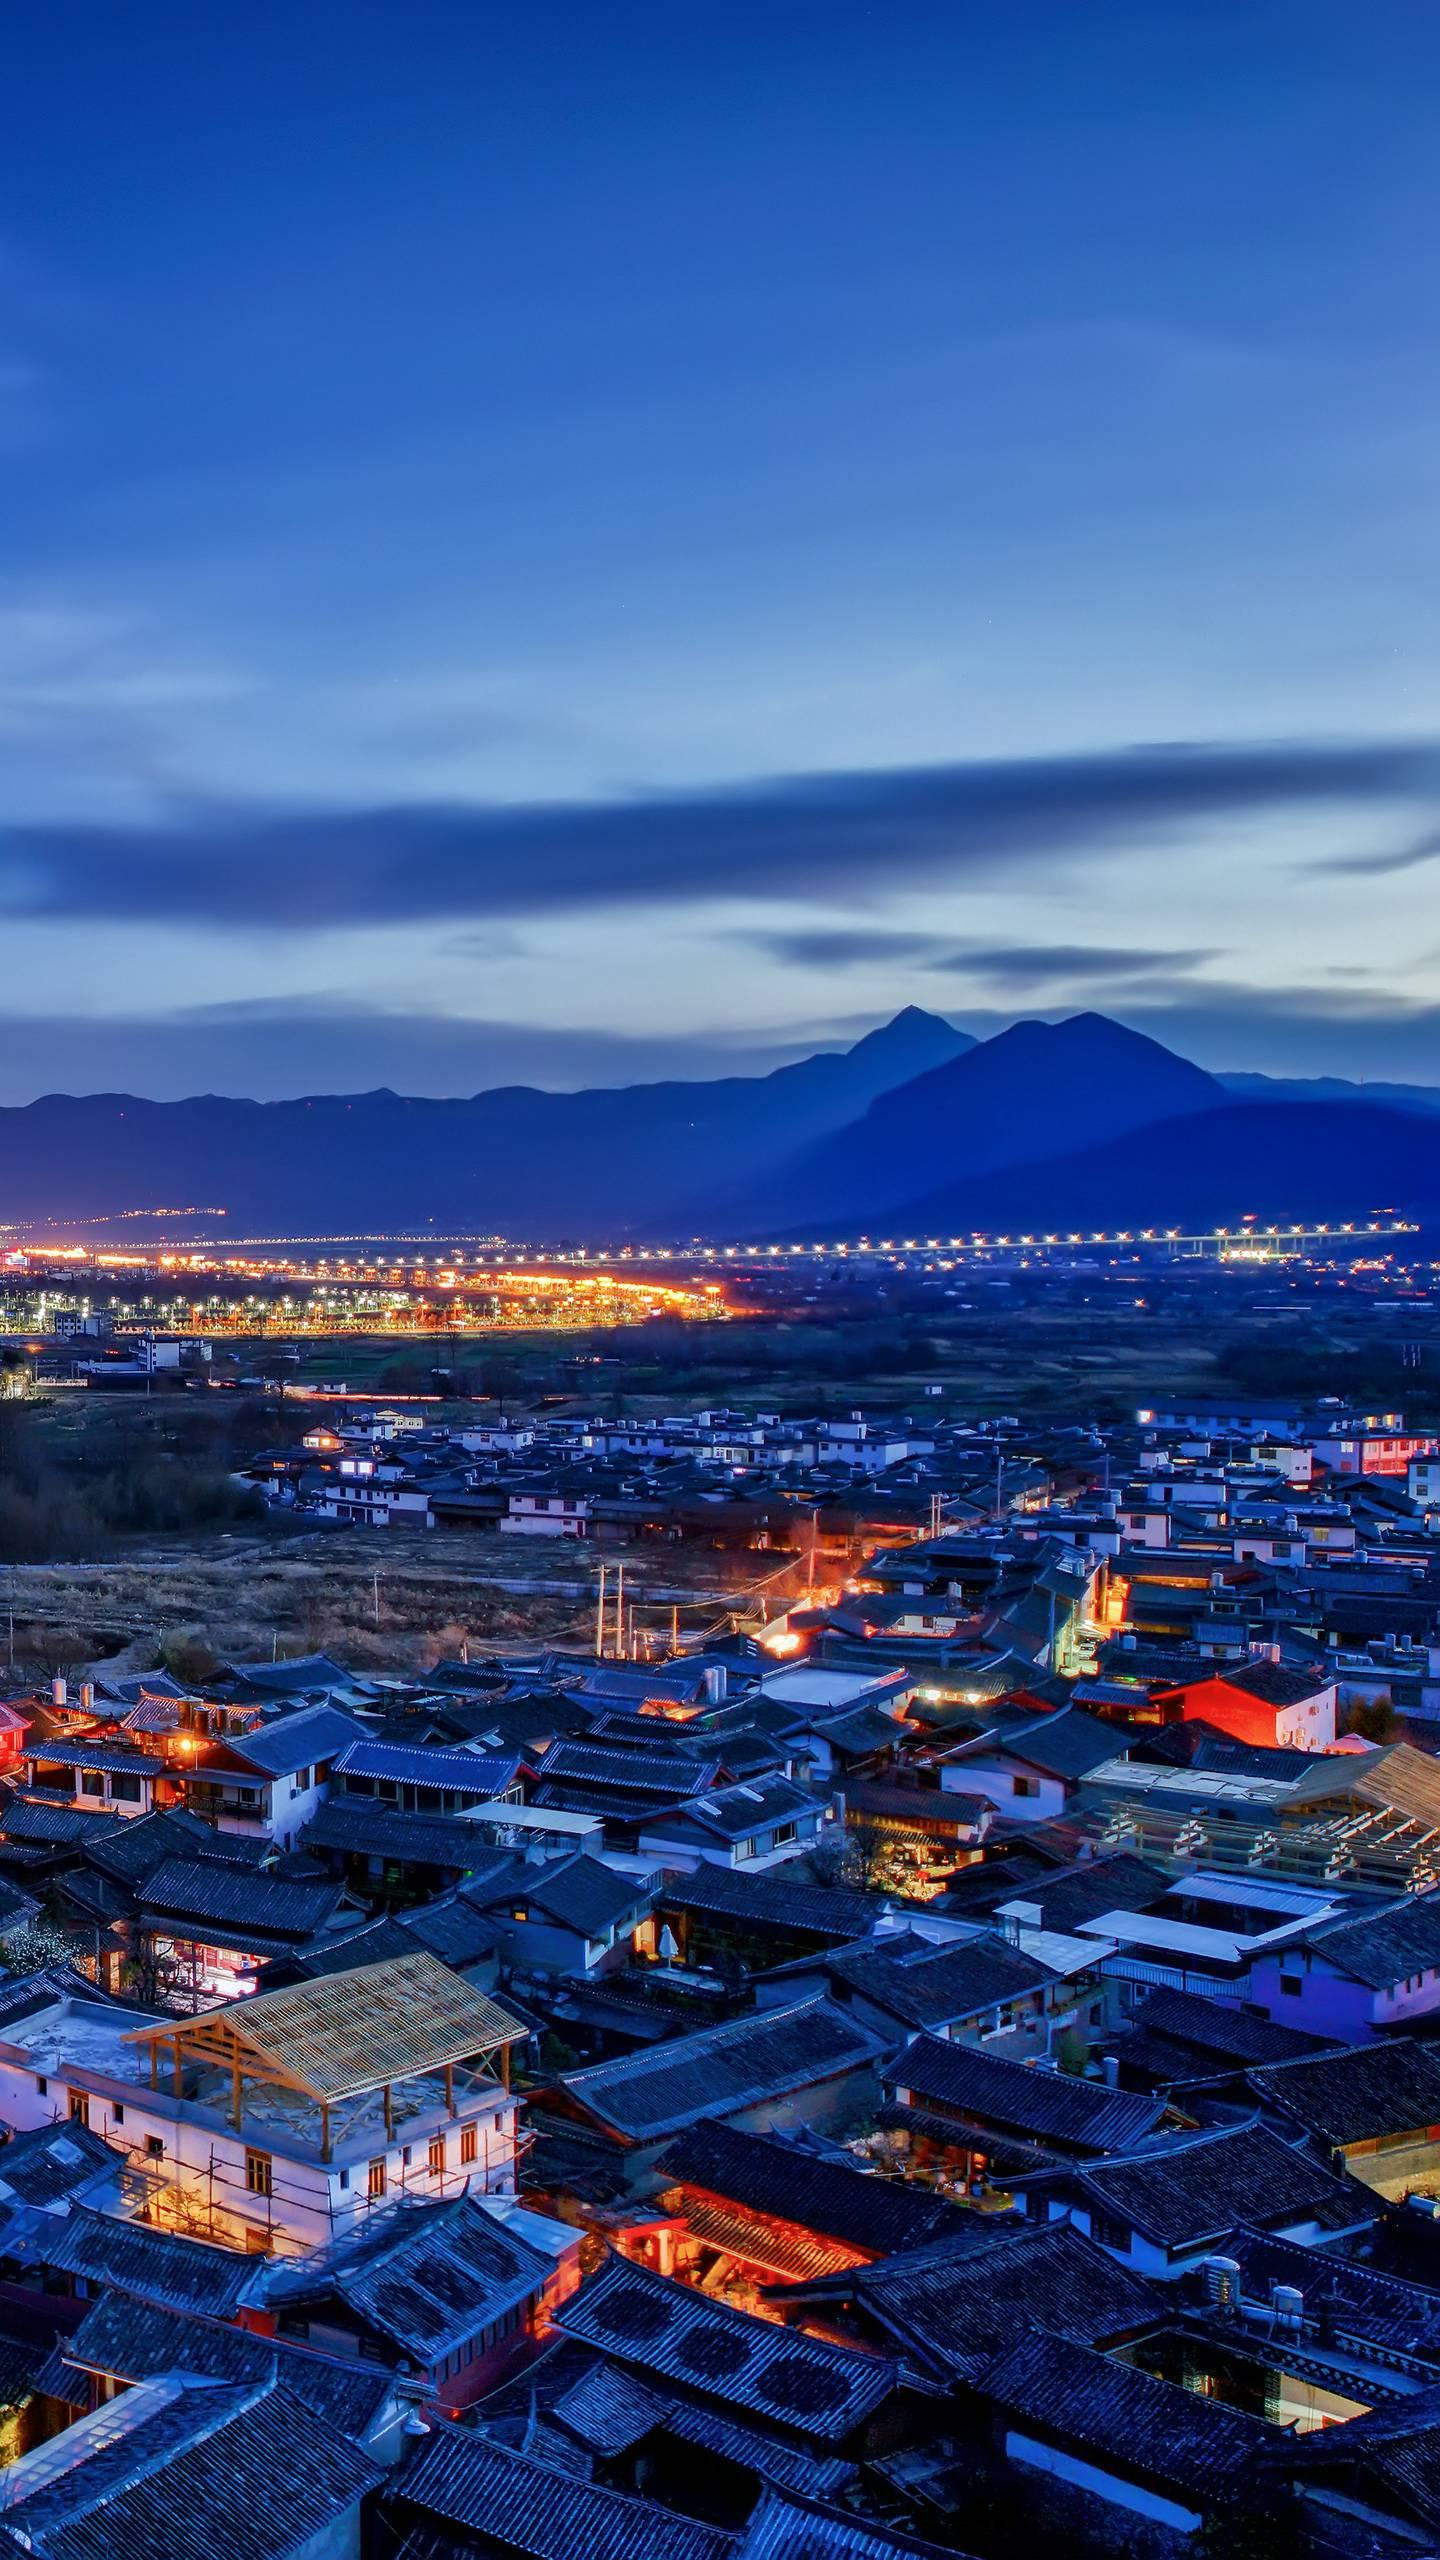 An ancient city without walls. Lijiang is a warm and quiet ancient city, with a winding and winding alley, stepping into it, making people feel like they are separated.